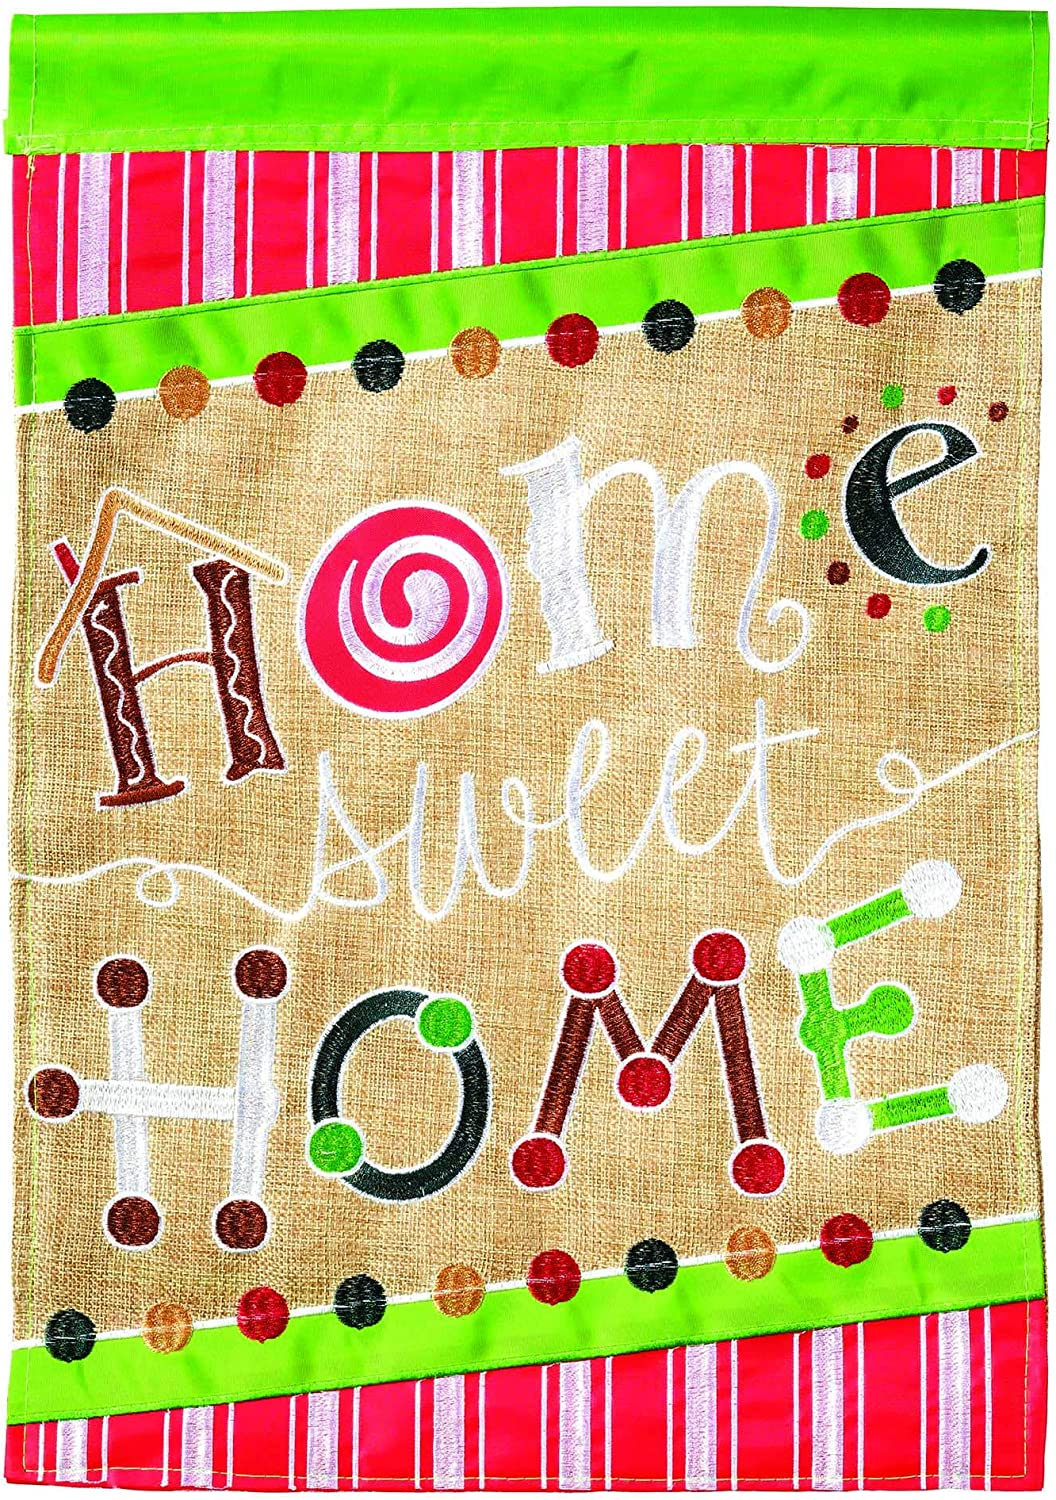 Magnolia Garden Home Sweet Home Green 13 x 18 Small Double Applique Outdoor Holiday House Flag